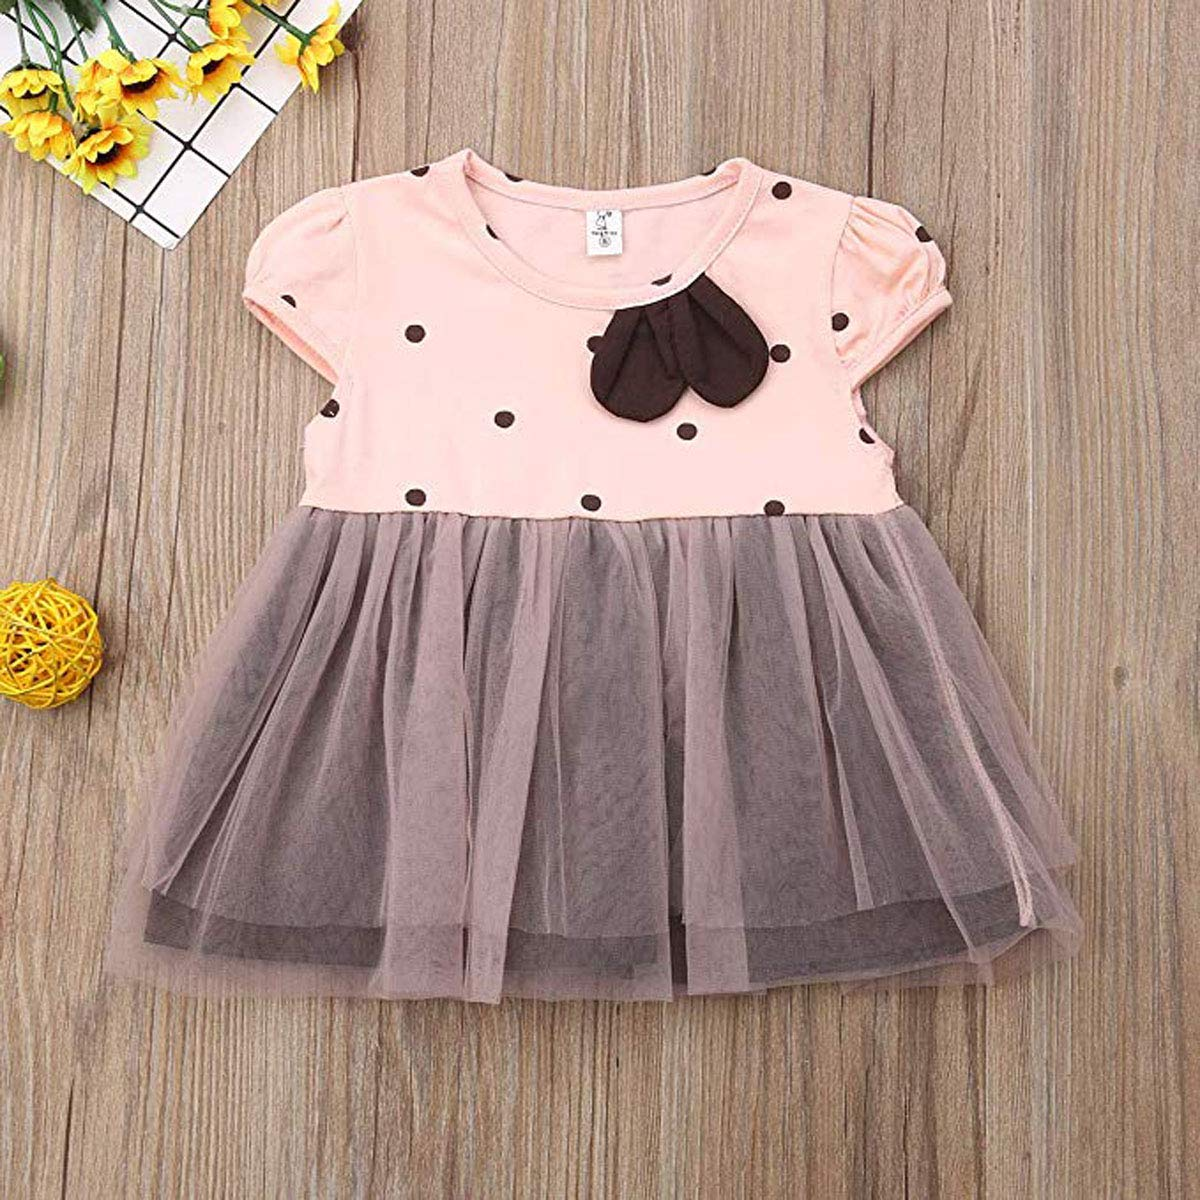 Toddler Kids Baby Girls Tulle Tutu Dress Polka Dots Print Ruffles Sleeve Princess Dress Summer Playwear